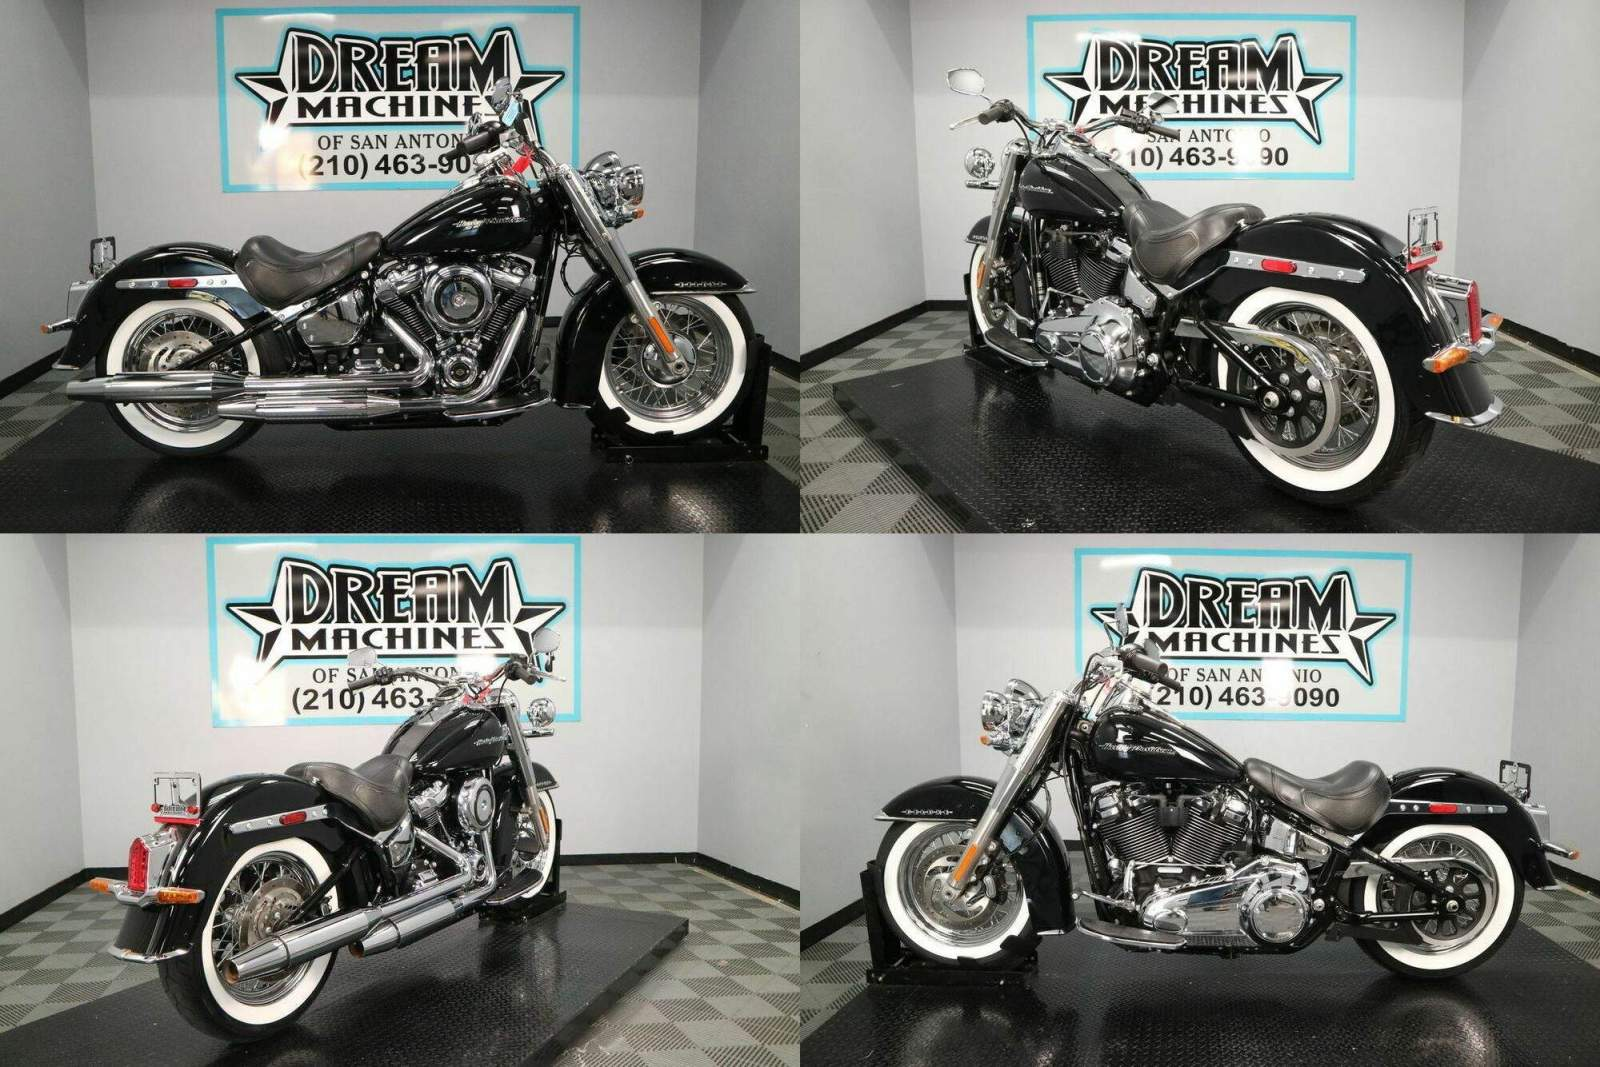 2019 Harley-Davidson FLDE - Softail Deluxe Black used for sale